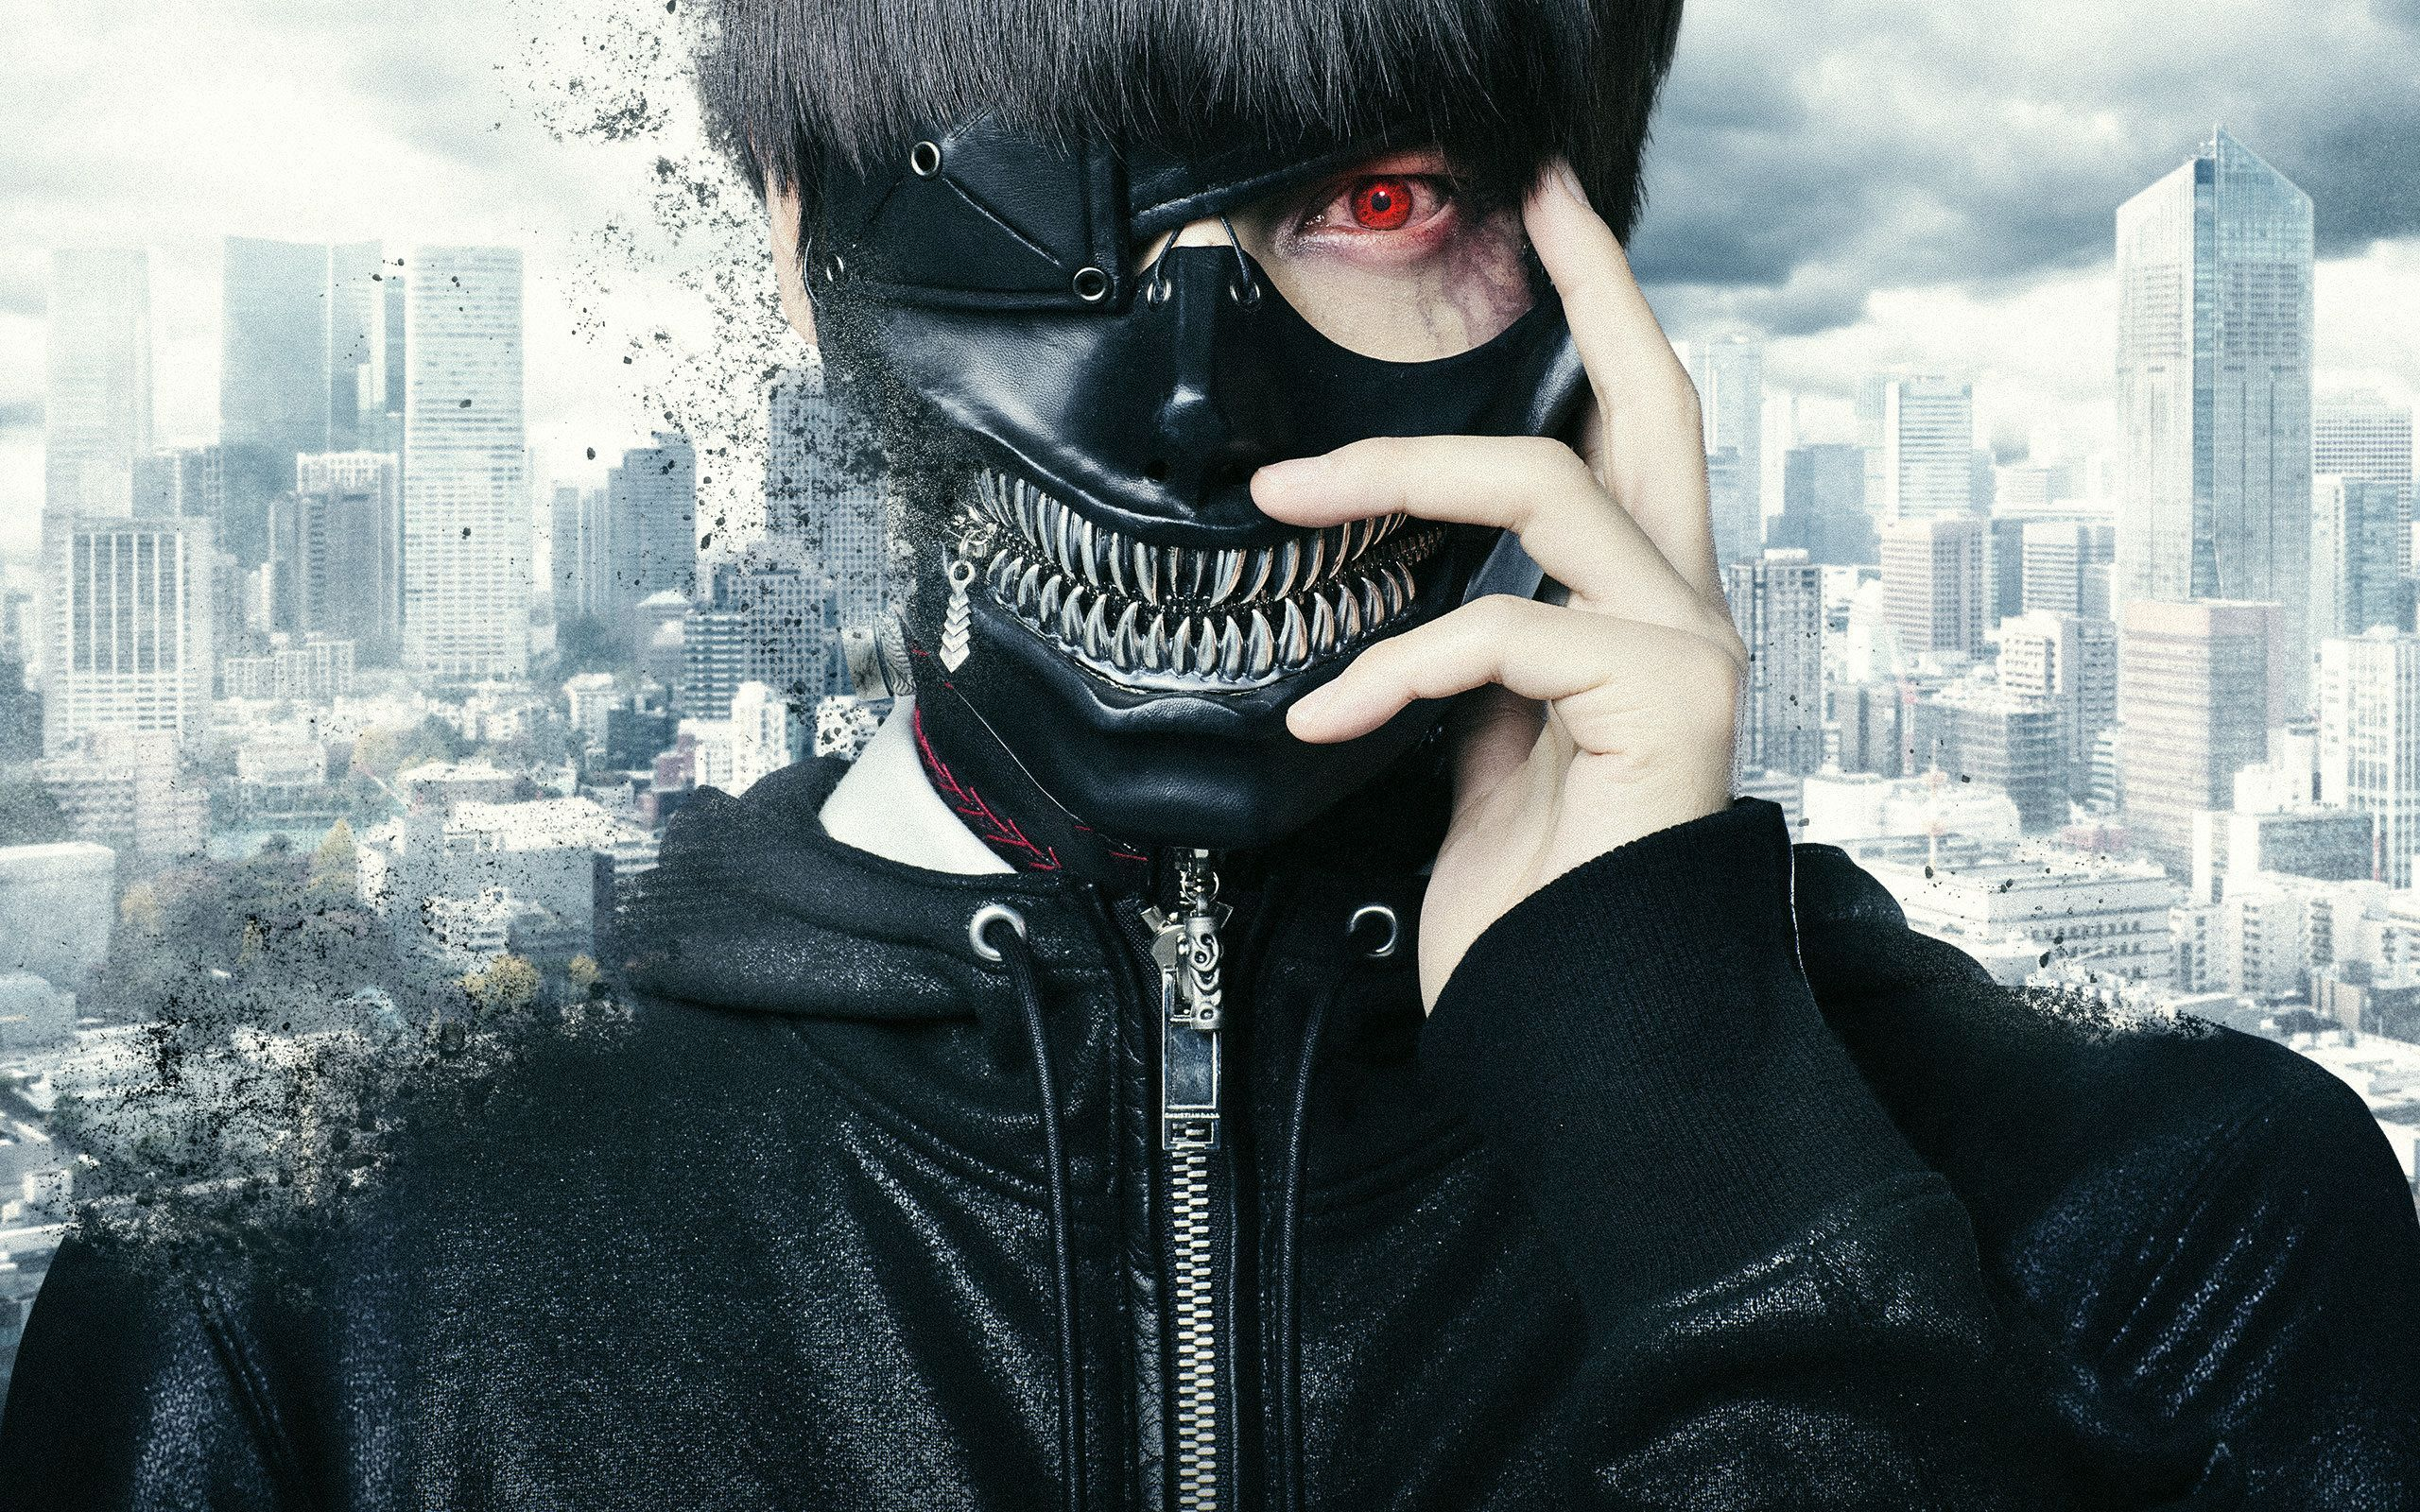 96 tokyo ghoul live wallpaper, download wallpapers anime hd. Tokyo Ghoul Live Wallpapers - Top Free Tokyo Ghoul Live ...